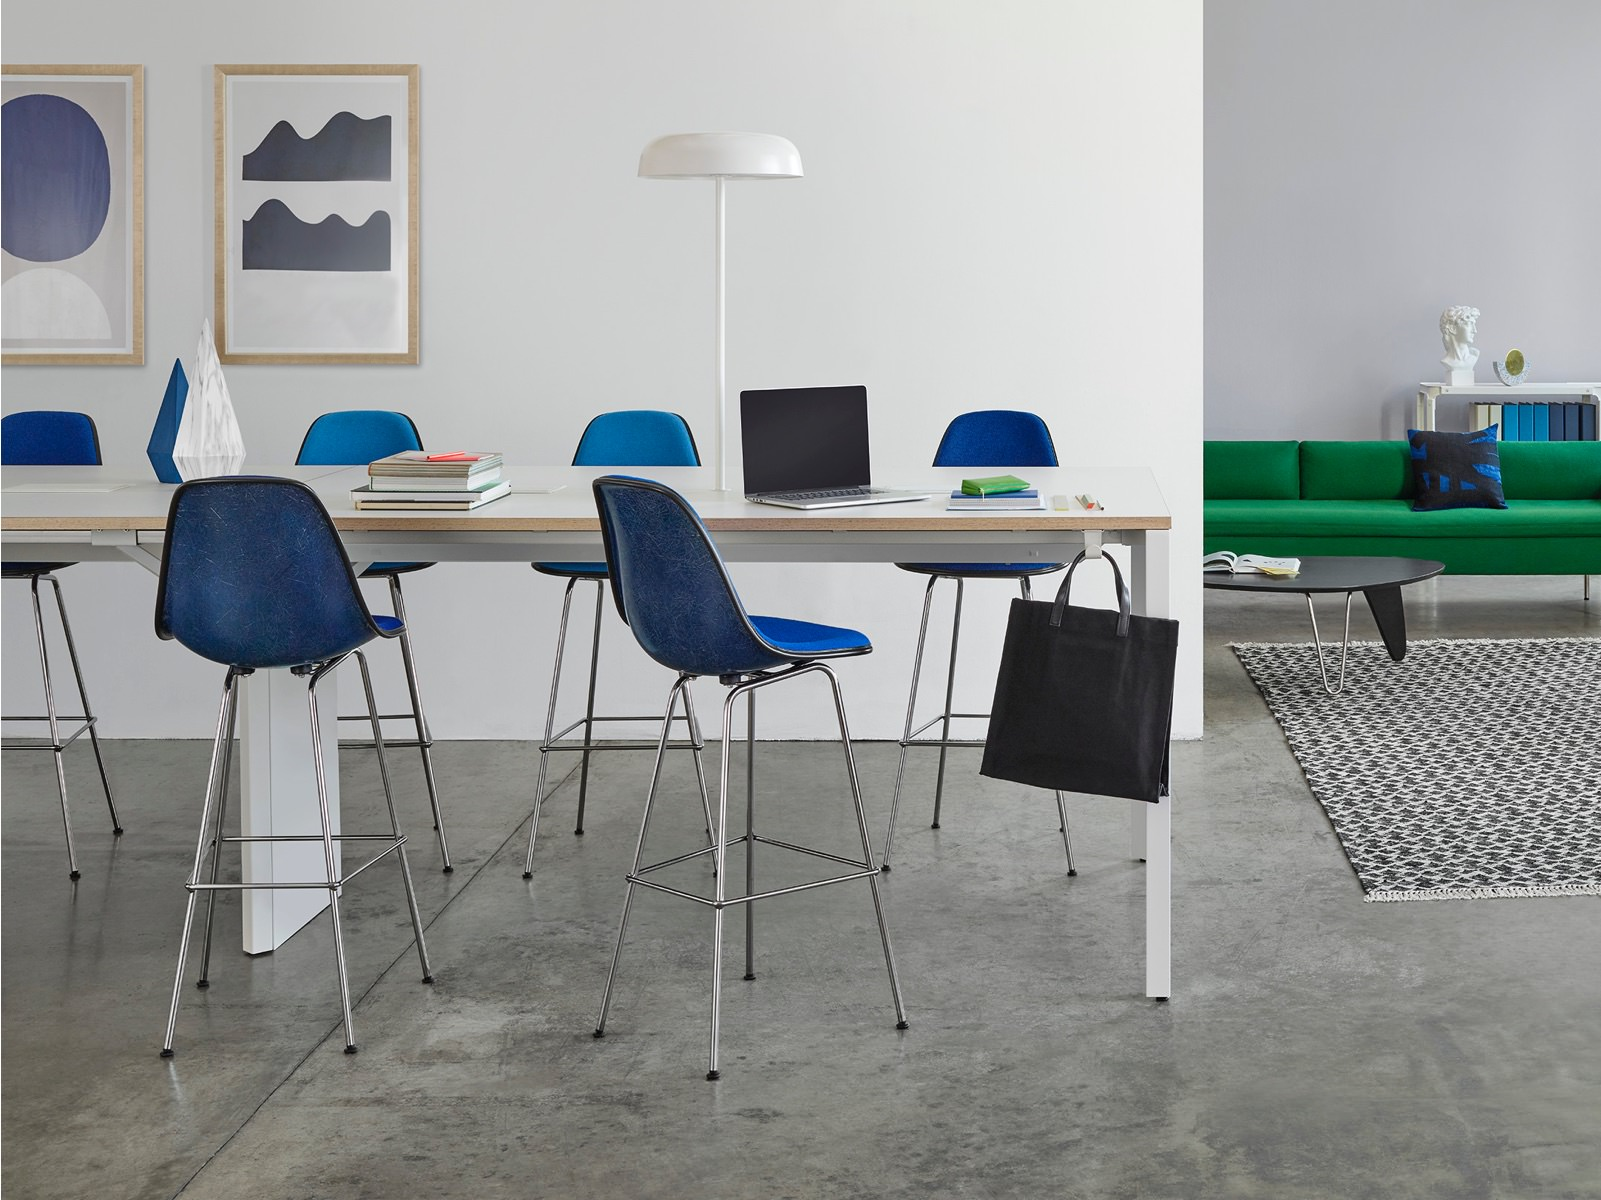 An interaction area with a Layout Studio meeting table offers a mix of seating, including a green Bolster Sofa and blue stools and side chairs.